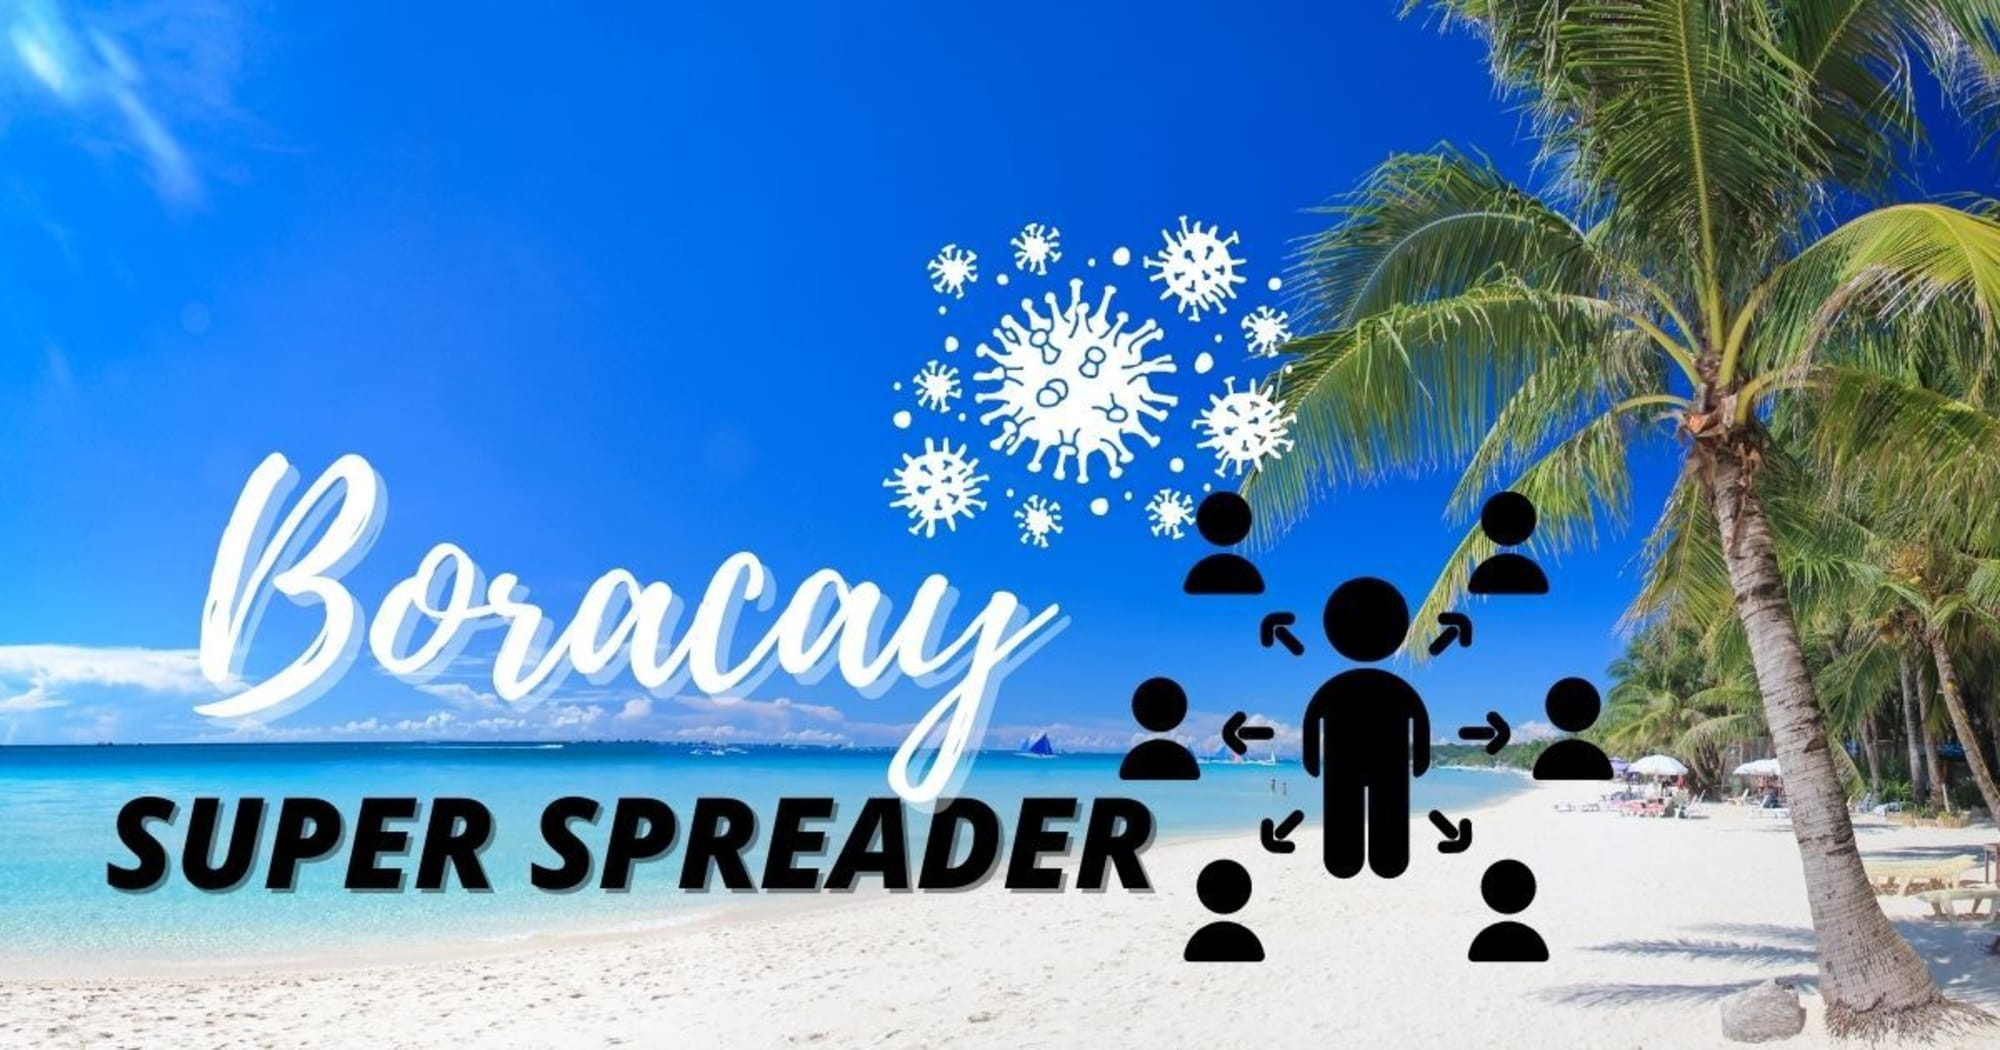 """STATEMENT OF THE DEPARTMENT OF TOURISM REGARDING THE ALLEGED BIRTHDAY """"SUPER SPREADER"""" EVENT IN BORACAY"""